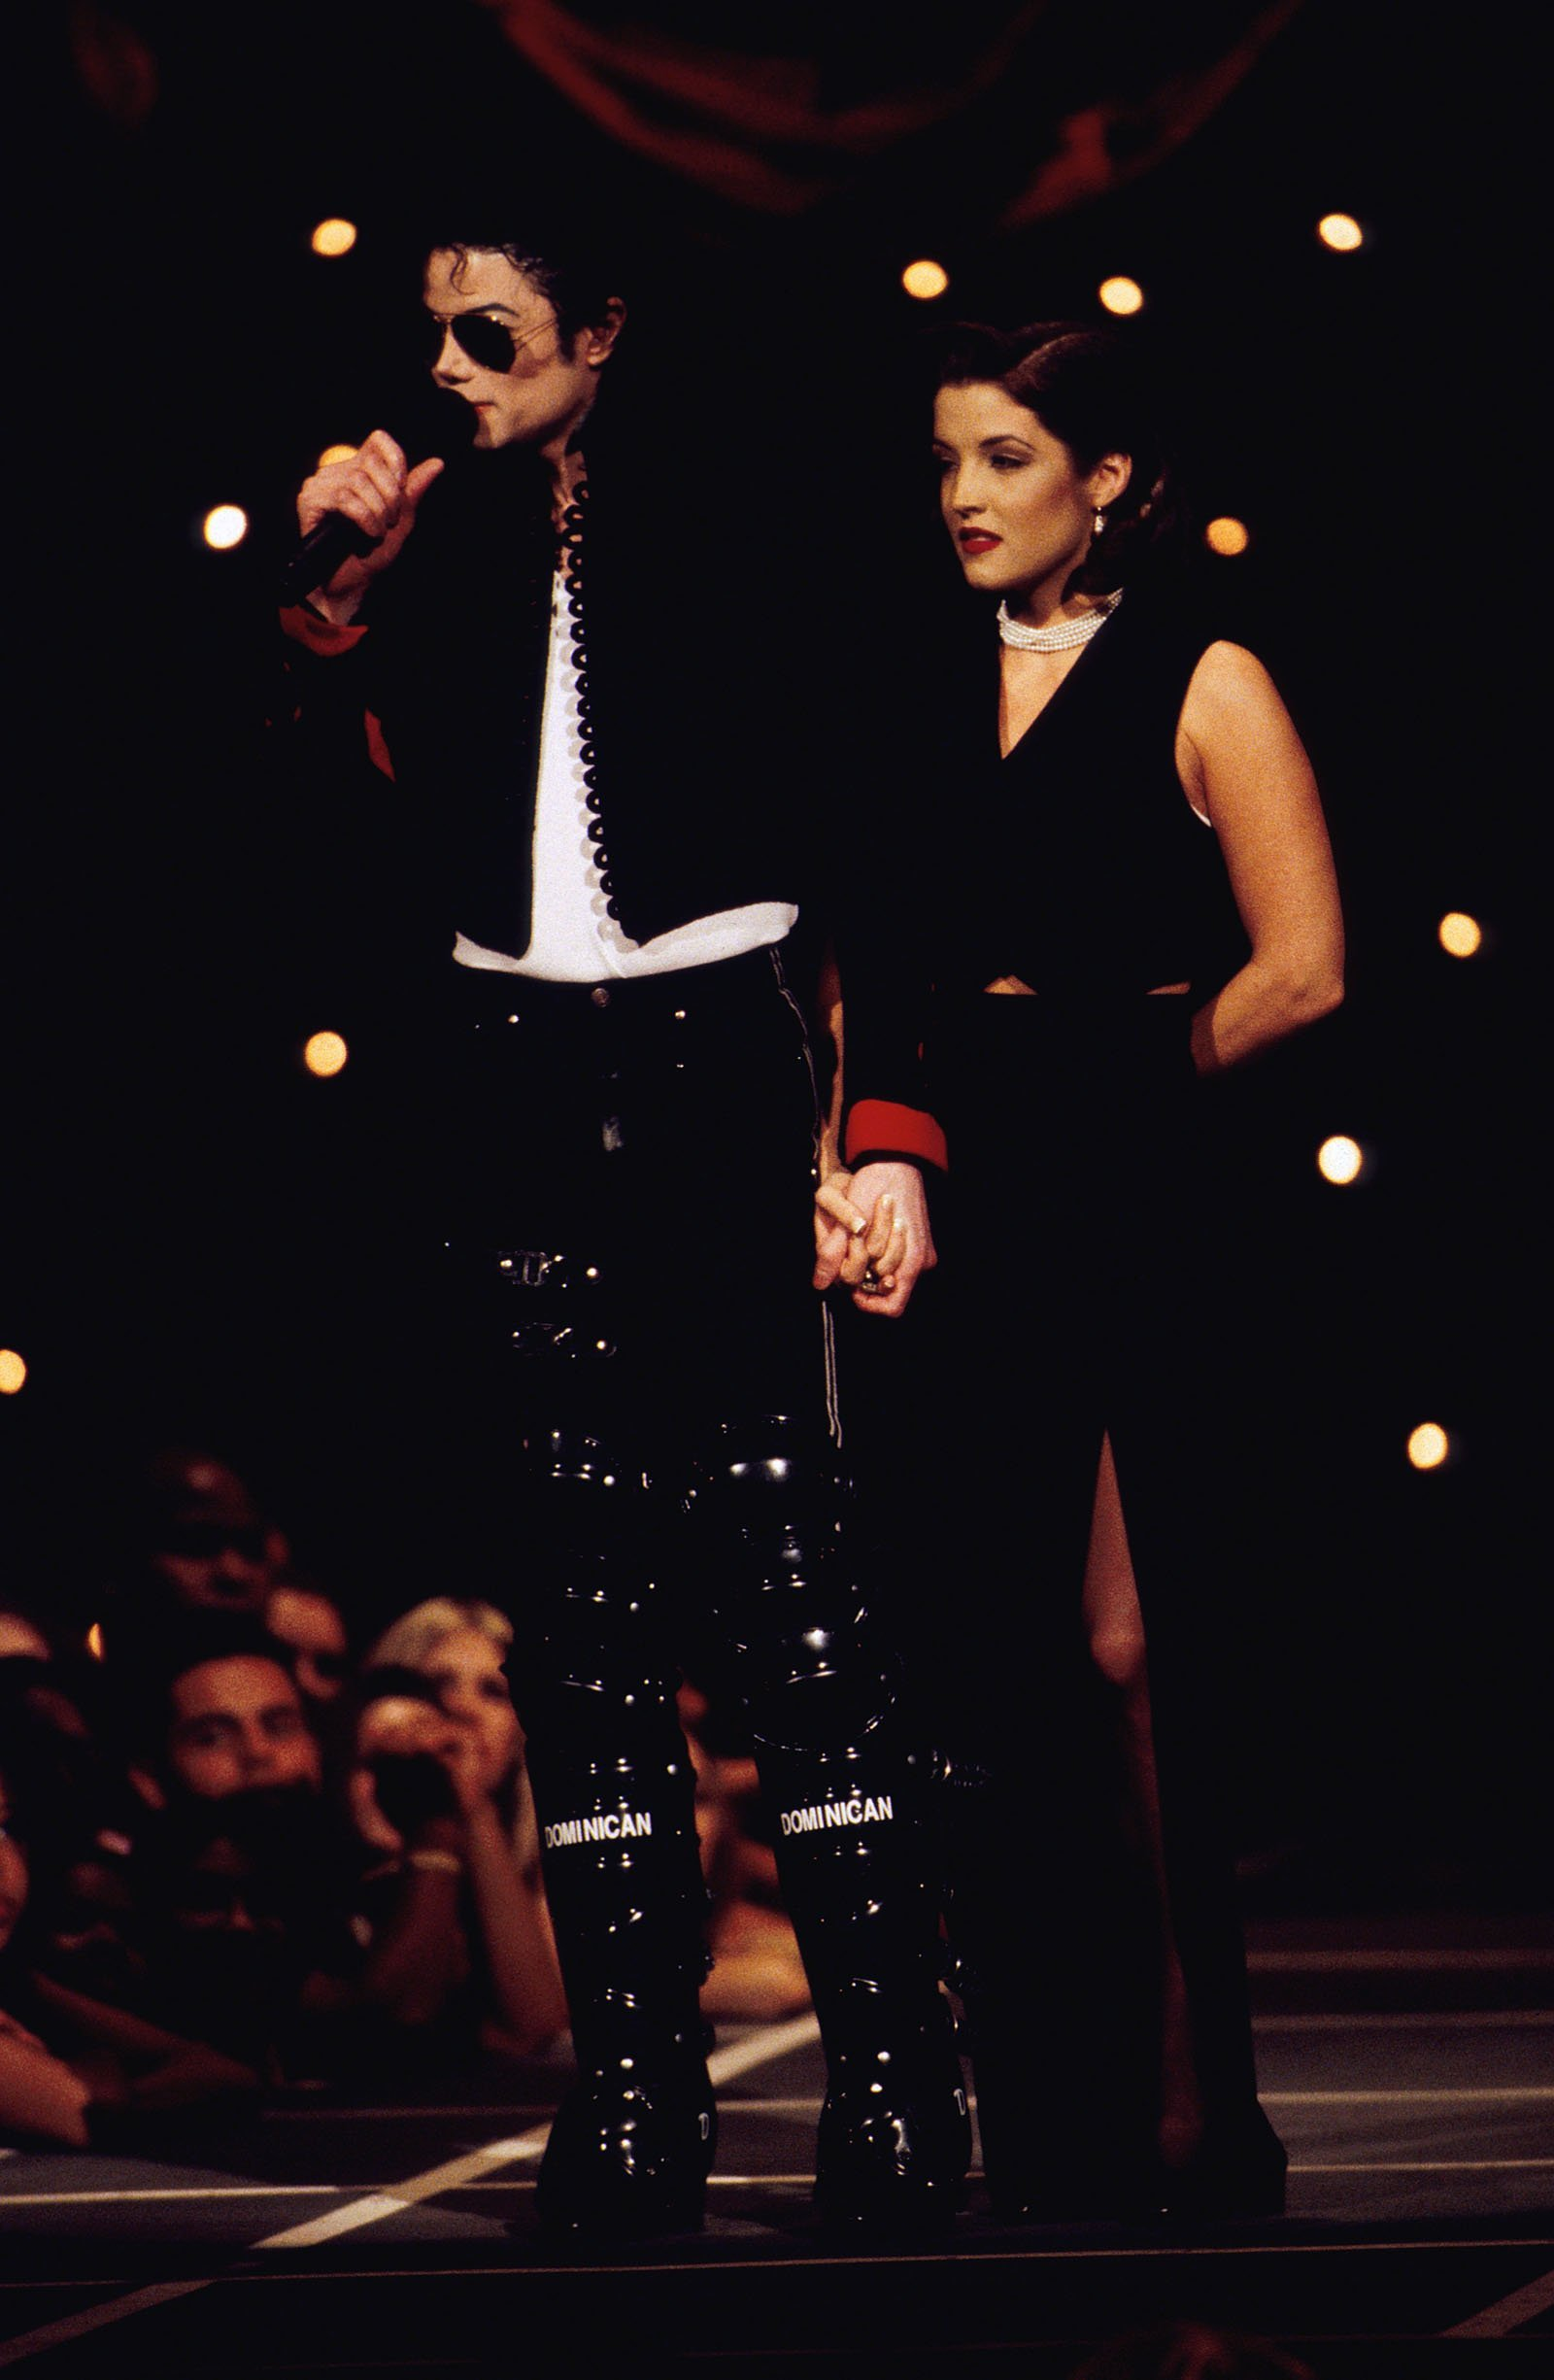 Michael Jackson and Lisa Marie Presley at the 1994 MTV Video Music Awards in Los Angeles, CA on September 8, 1994. | Source: Getty Images.